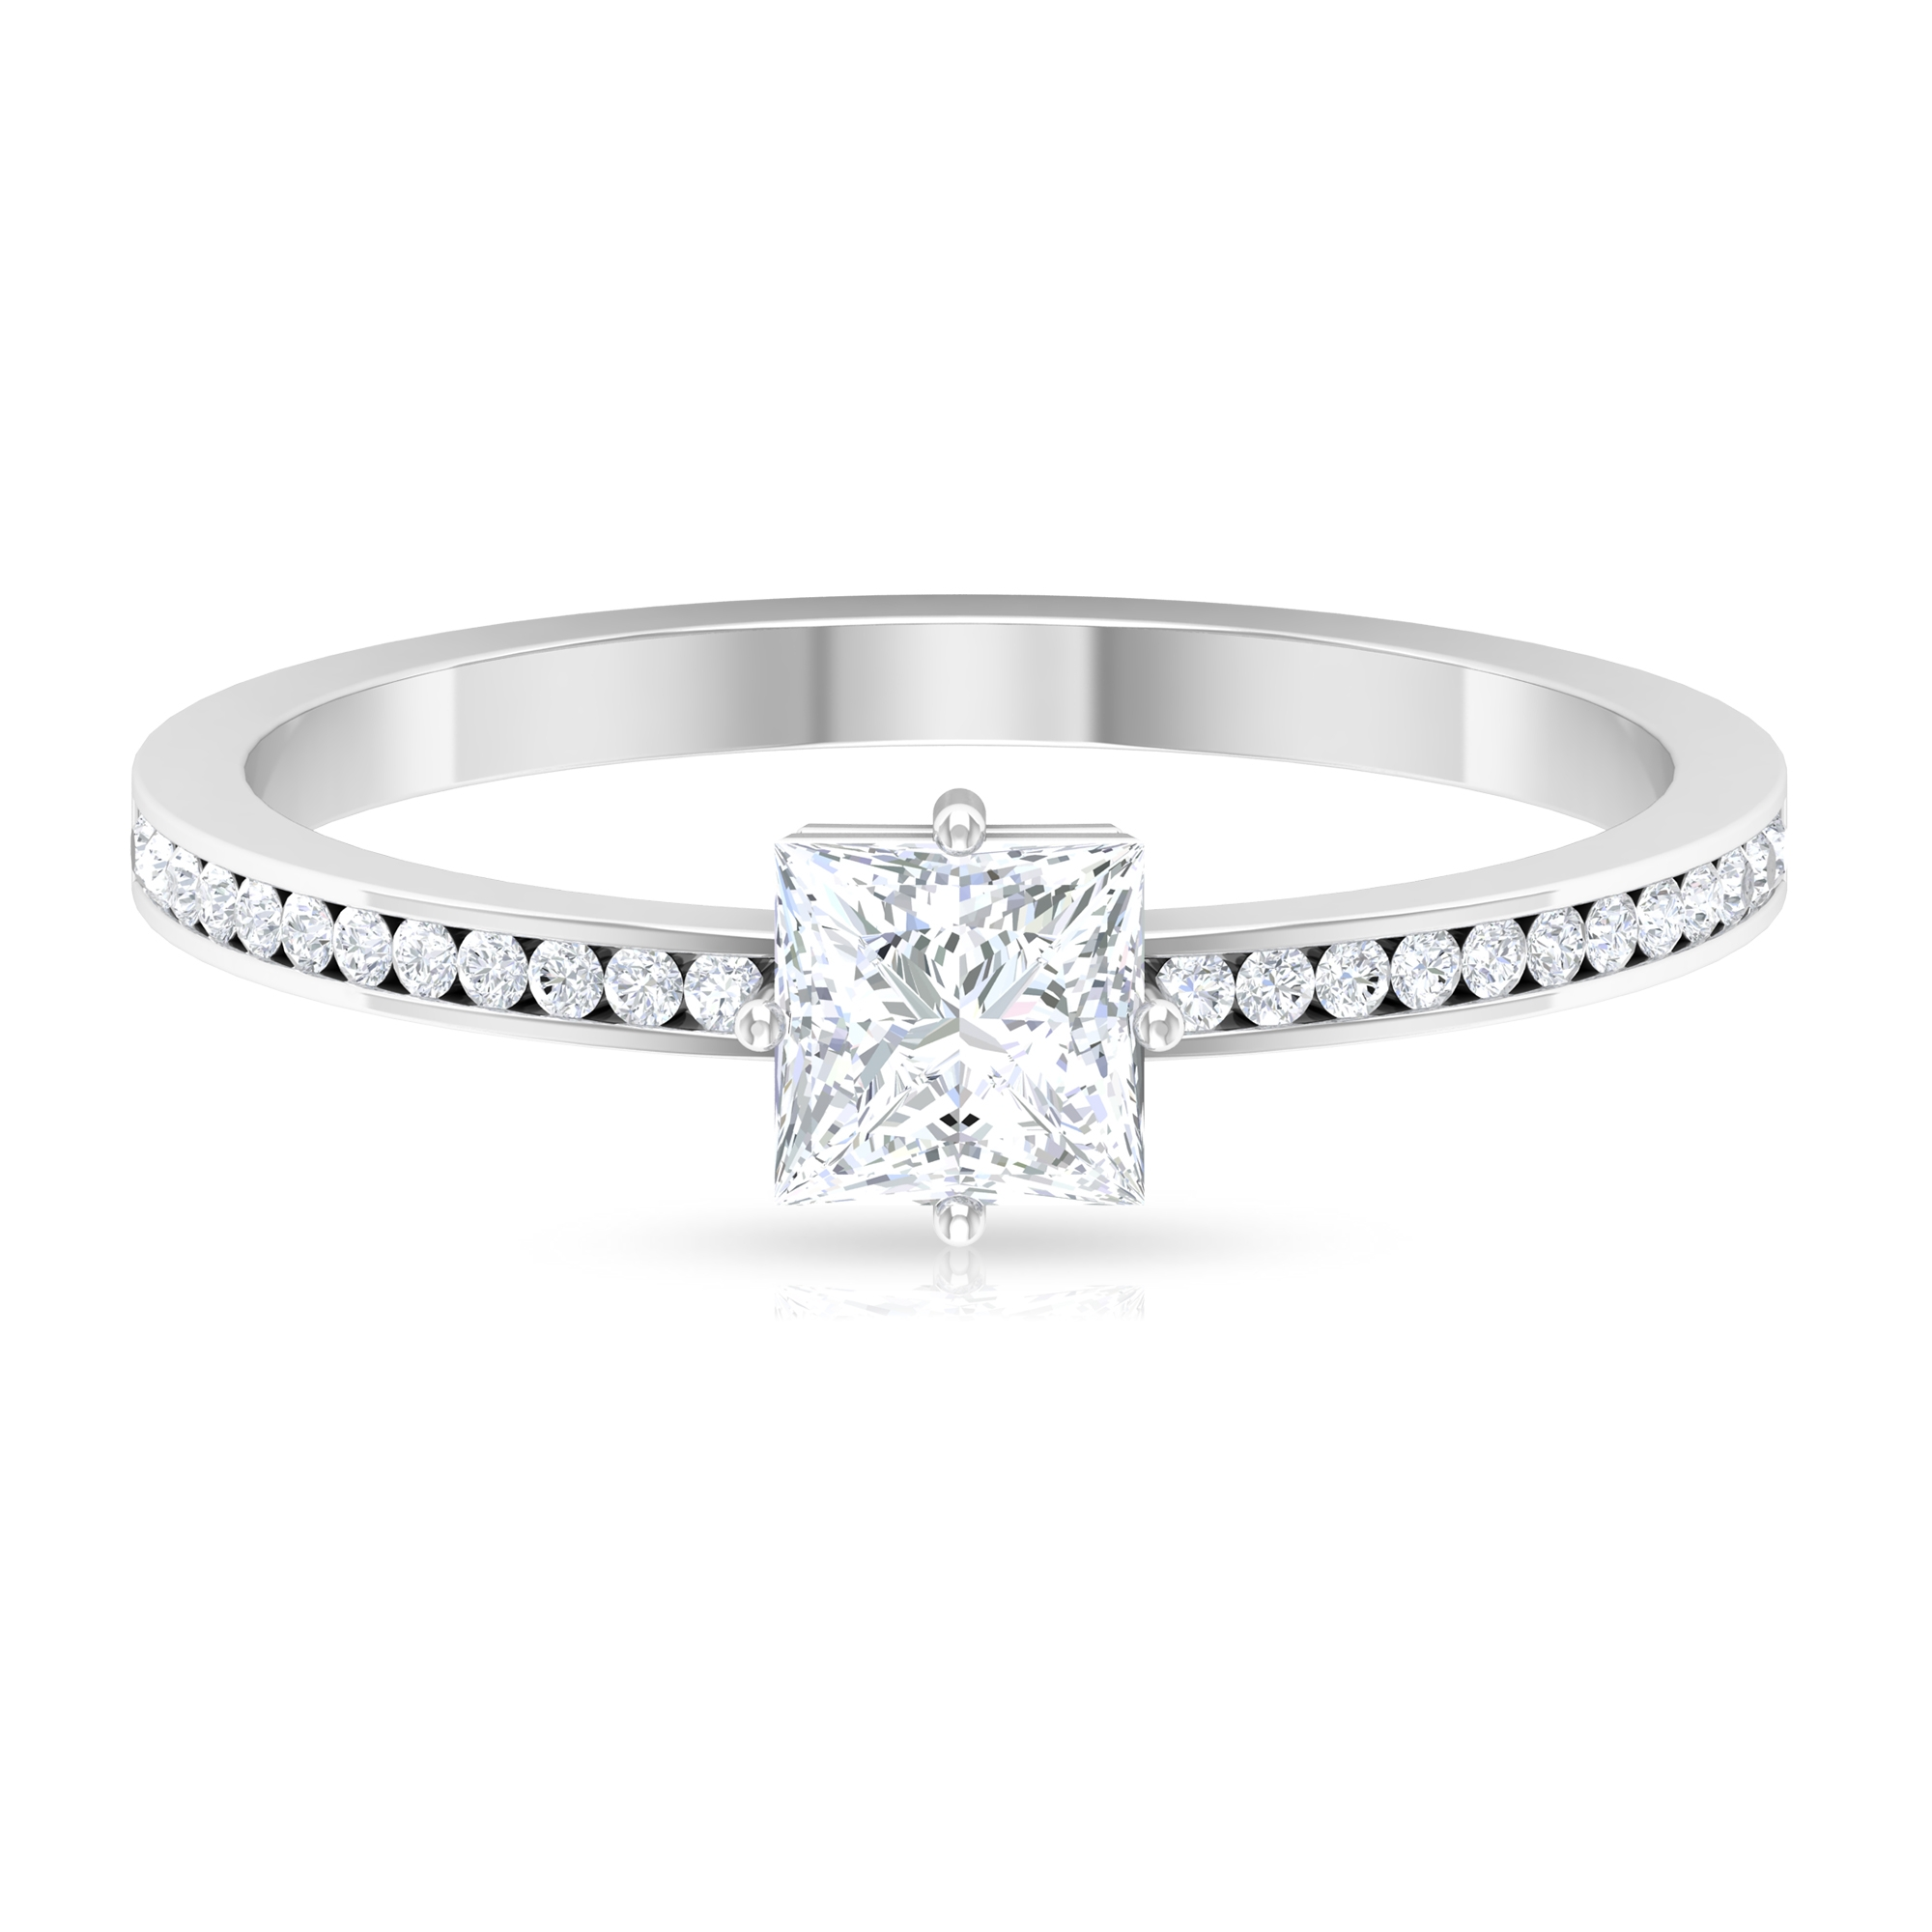 3/4 CT Four Prong Diagonal Set Solitaire Diamond Ring with Channel Set Side Stones